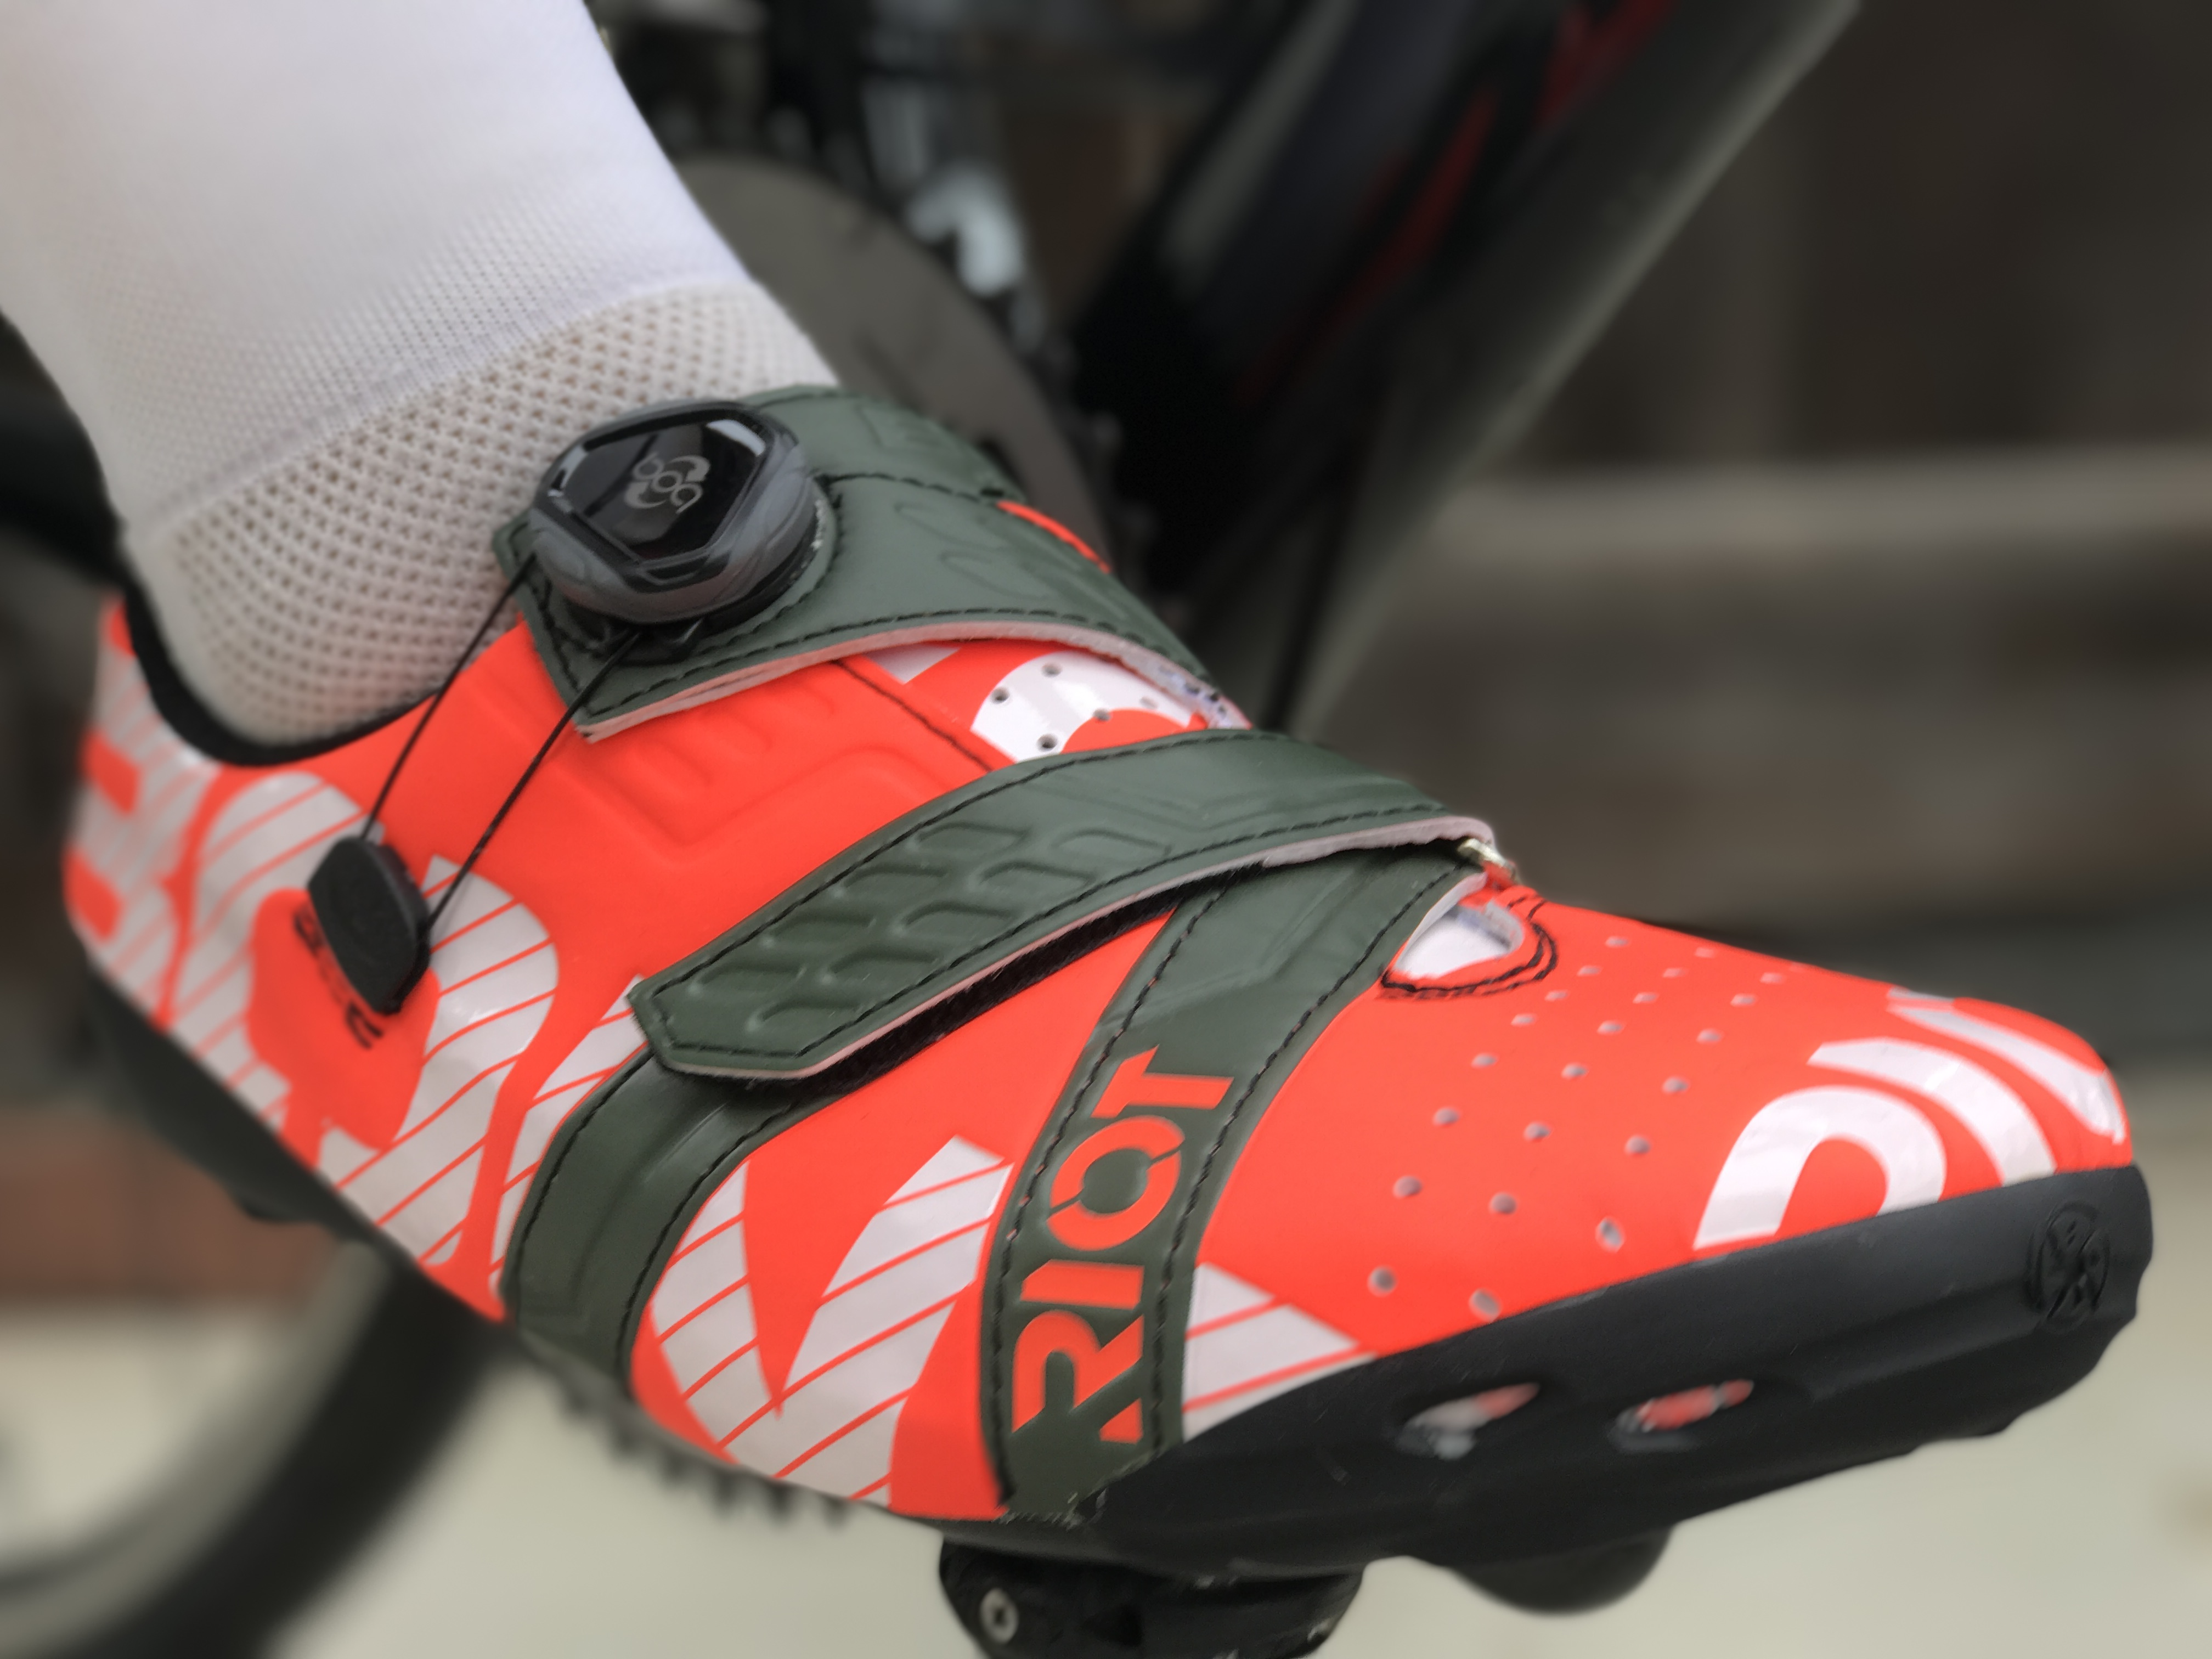 5c2af285733 The Best Cycling Shoes for Wide Width Feet - The 3 Brands That Will Fit!